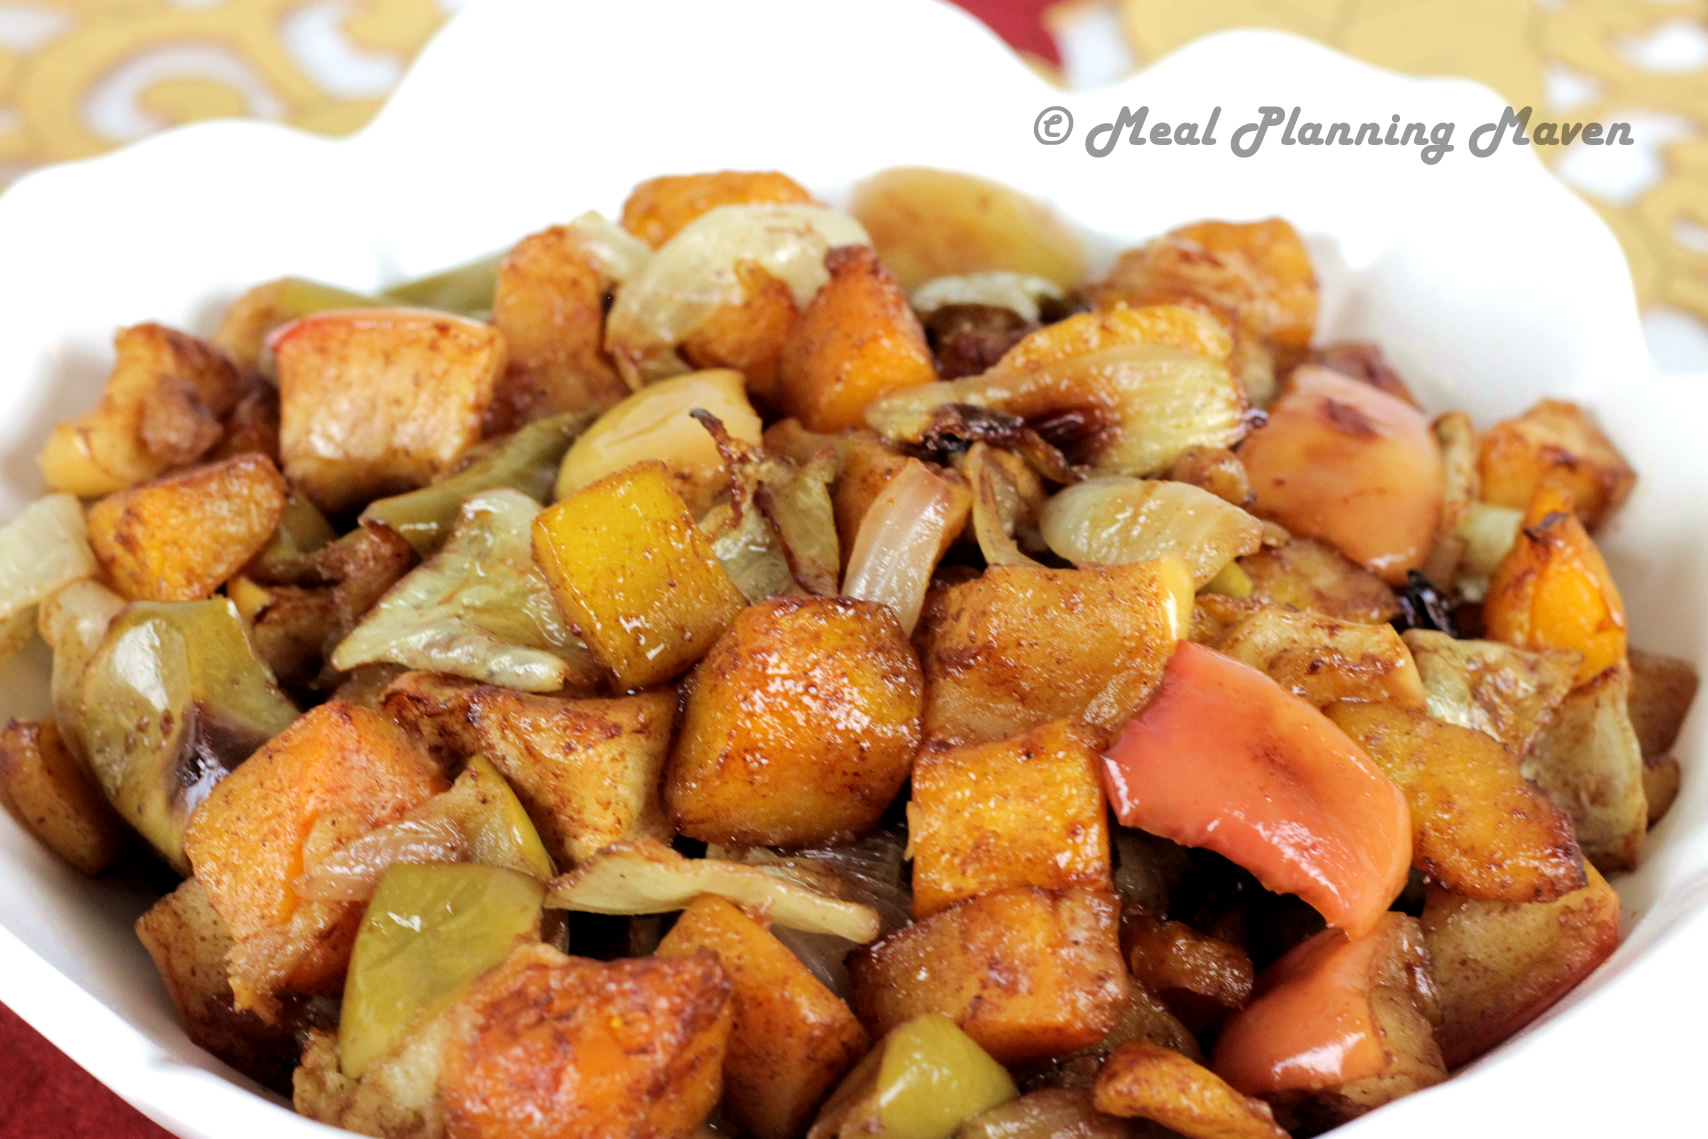 Roasted Apples, Butternuts 'n Onions